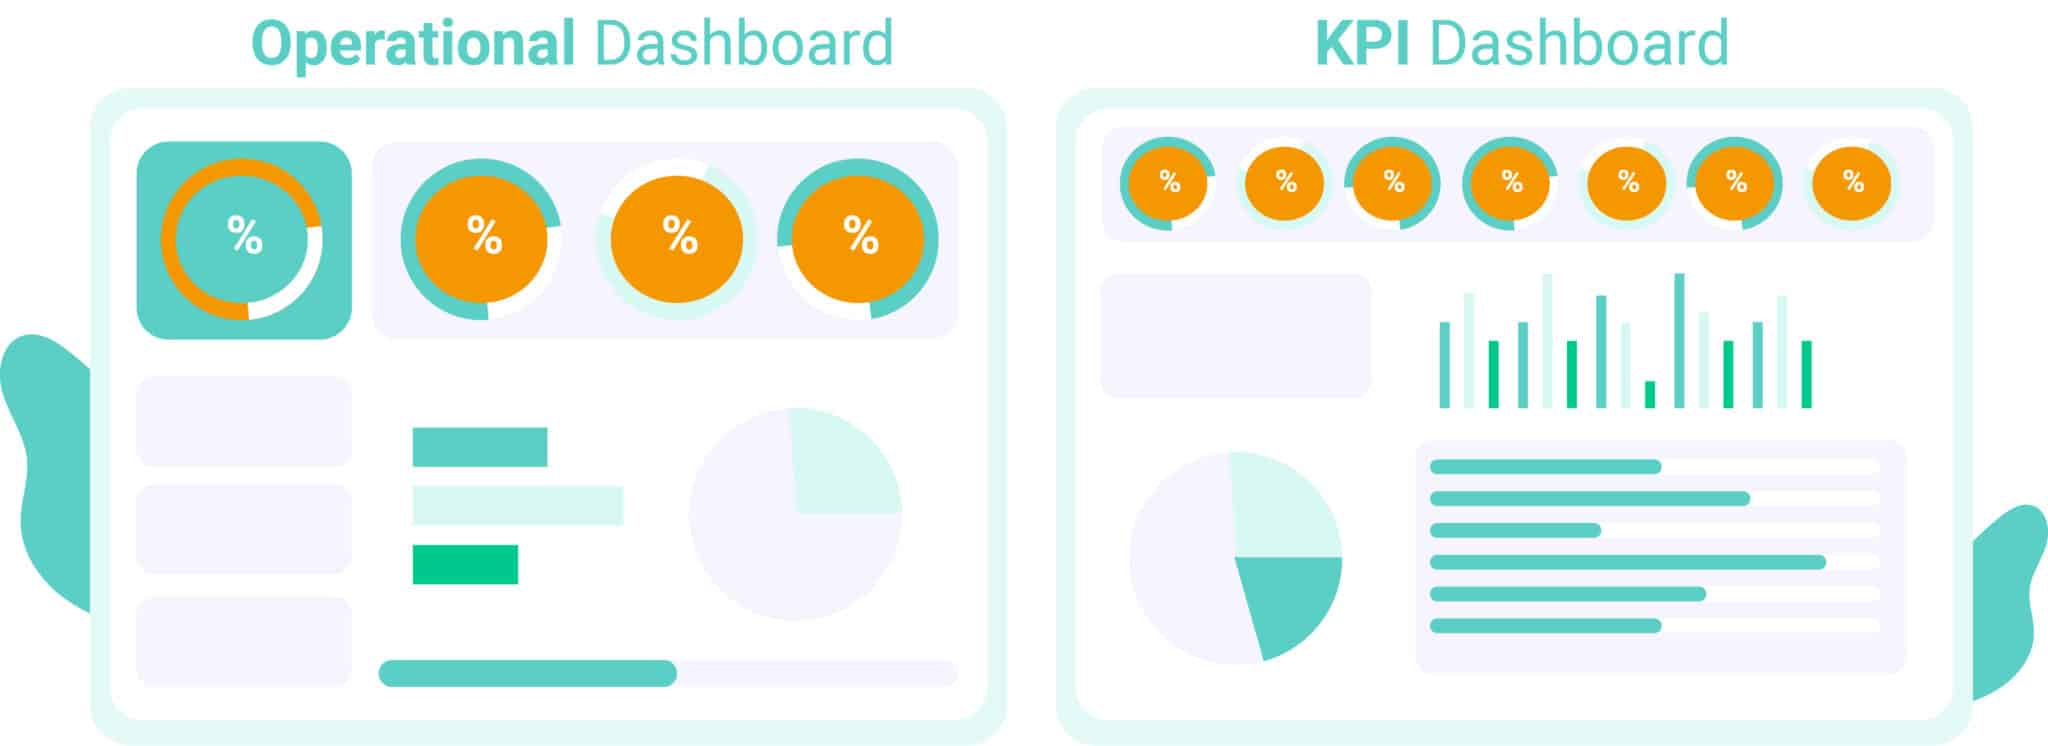 selecting the right type of dashboard is an essential step of dashboard design principles provided by a remote team of expert designers - WANDR Studio, the best UX Design Firm in LA